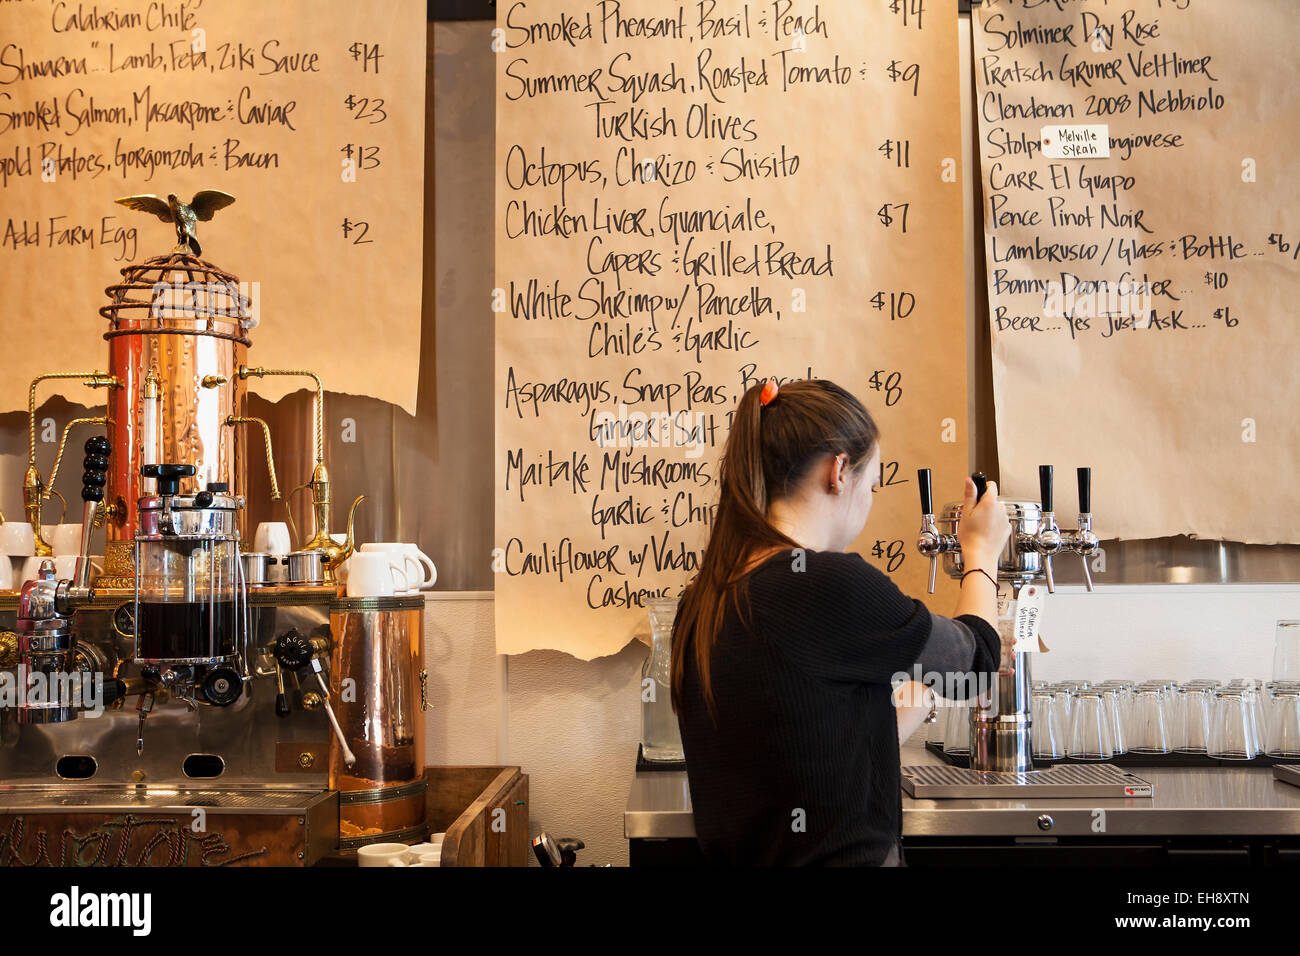 server pours a glass of viognier with menus on brown paper rolls, Industrial Eats, Buellton, California - Stock Image